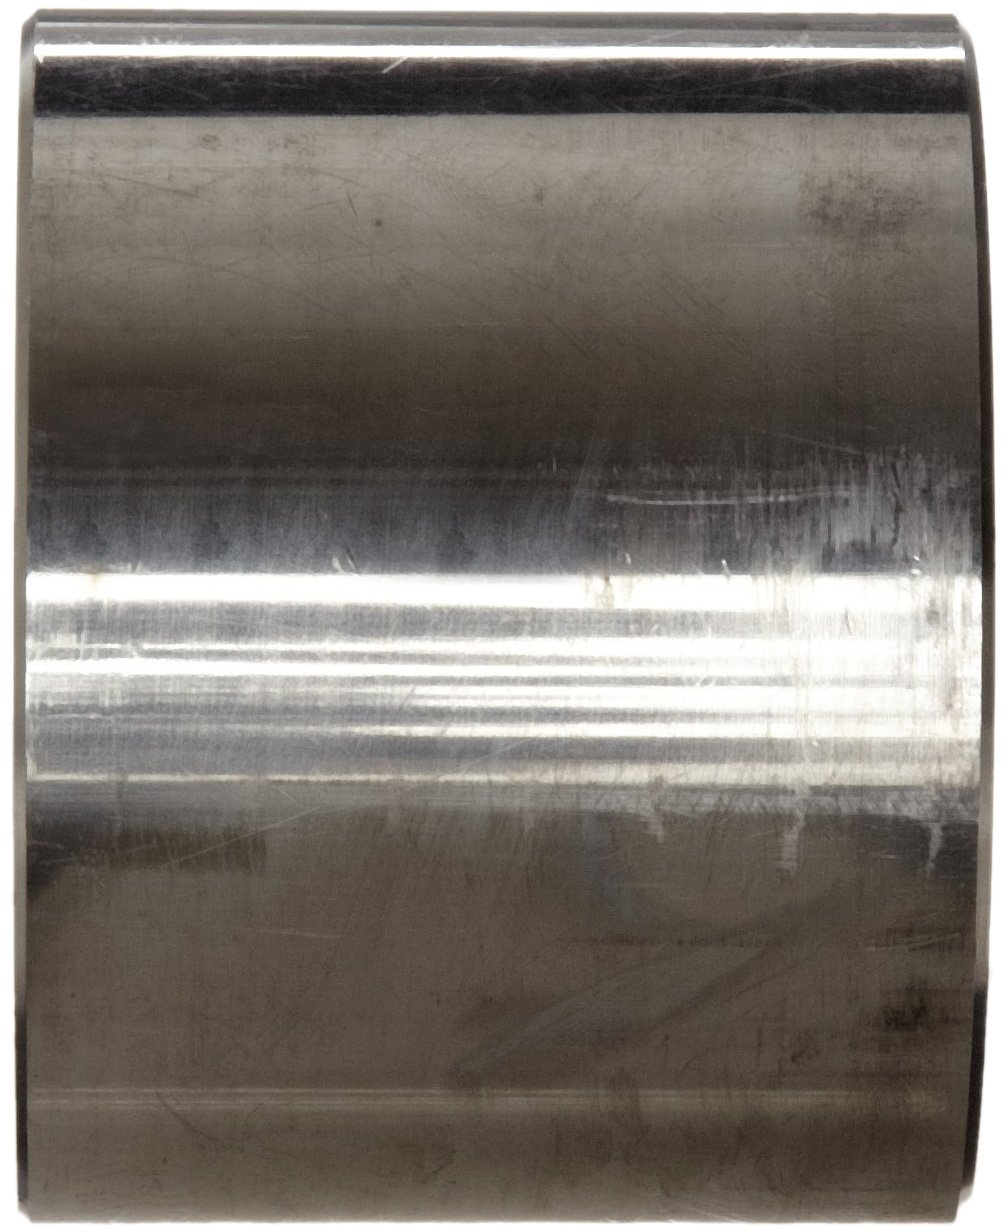 1 Female 1 Female Merit Brass SW3611HD-16 Half Coupling 316//316L Forged Stainless Steel Pipe Fitting Class 3000 Socket Weld